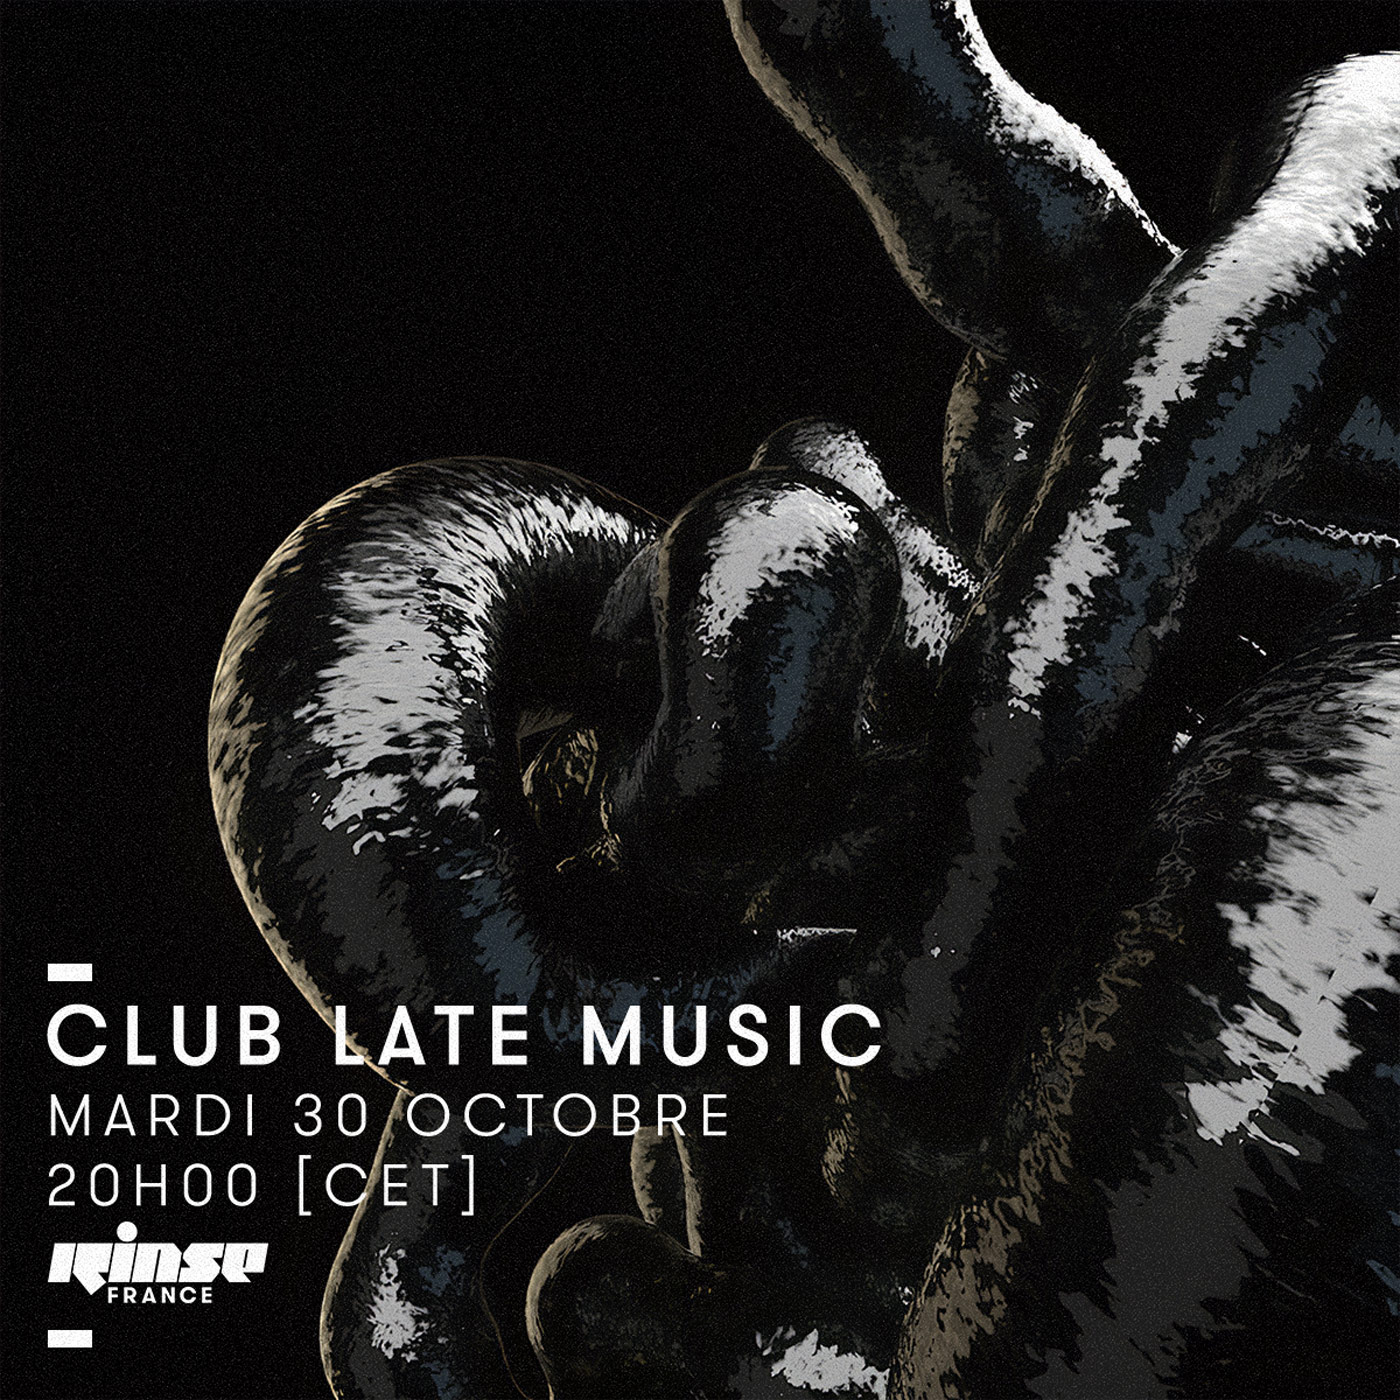 16 collide24 clm club late music - The open-source and collaborative music label Club Late Music explores new ways of producing and promoting music